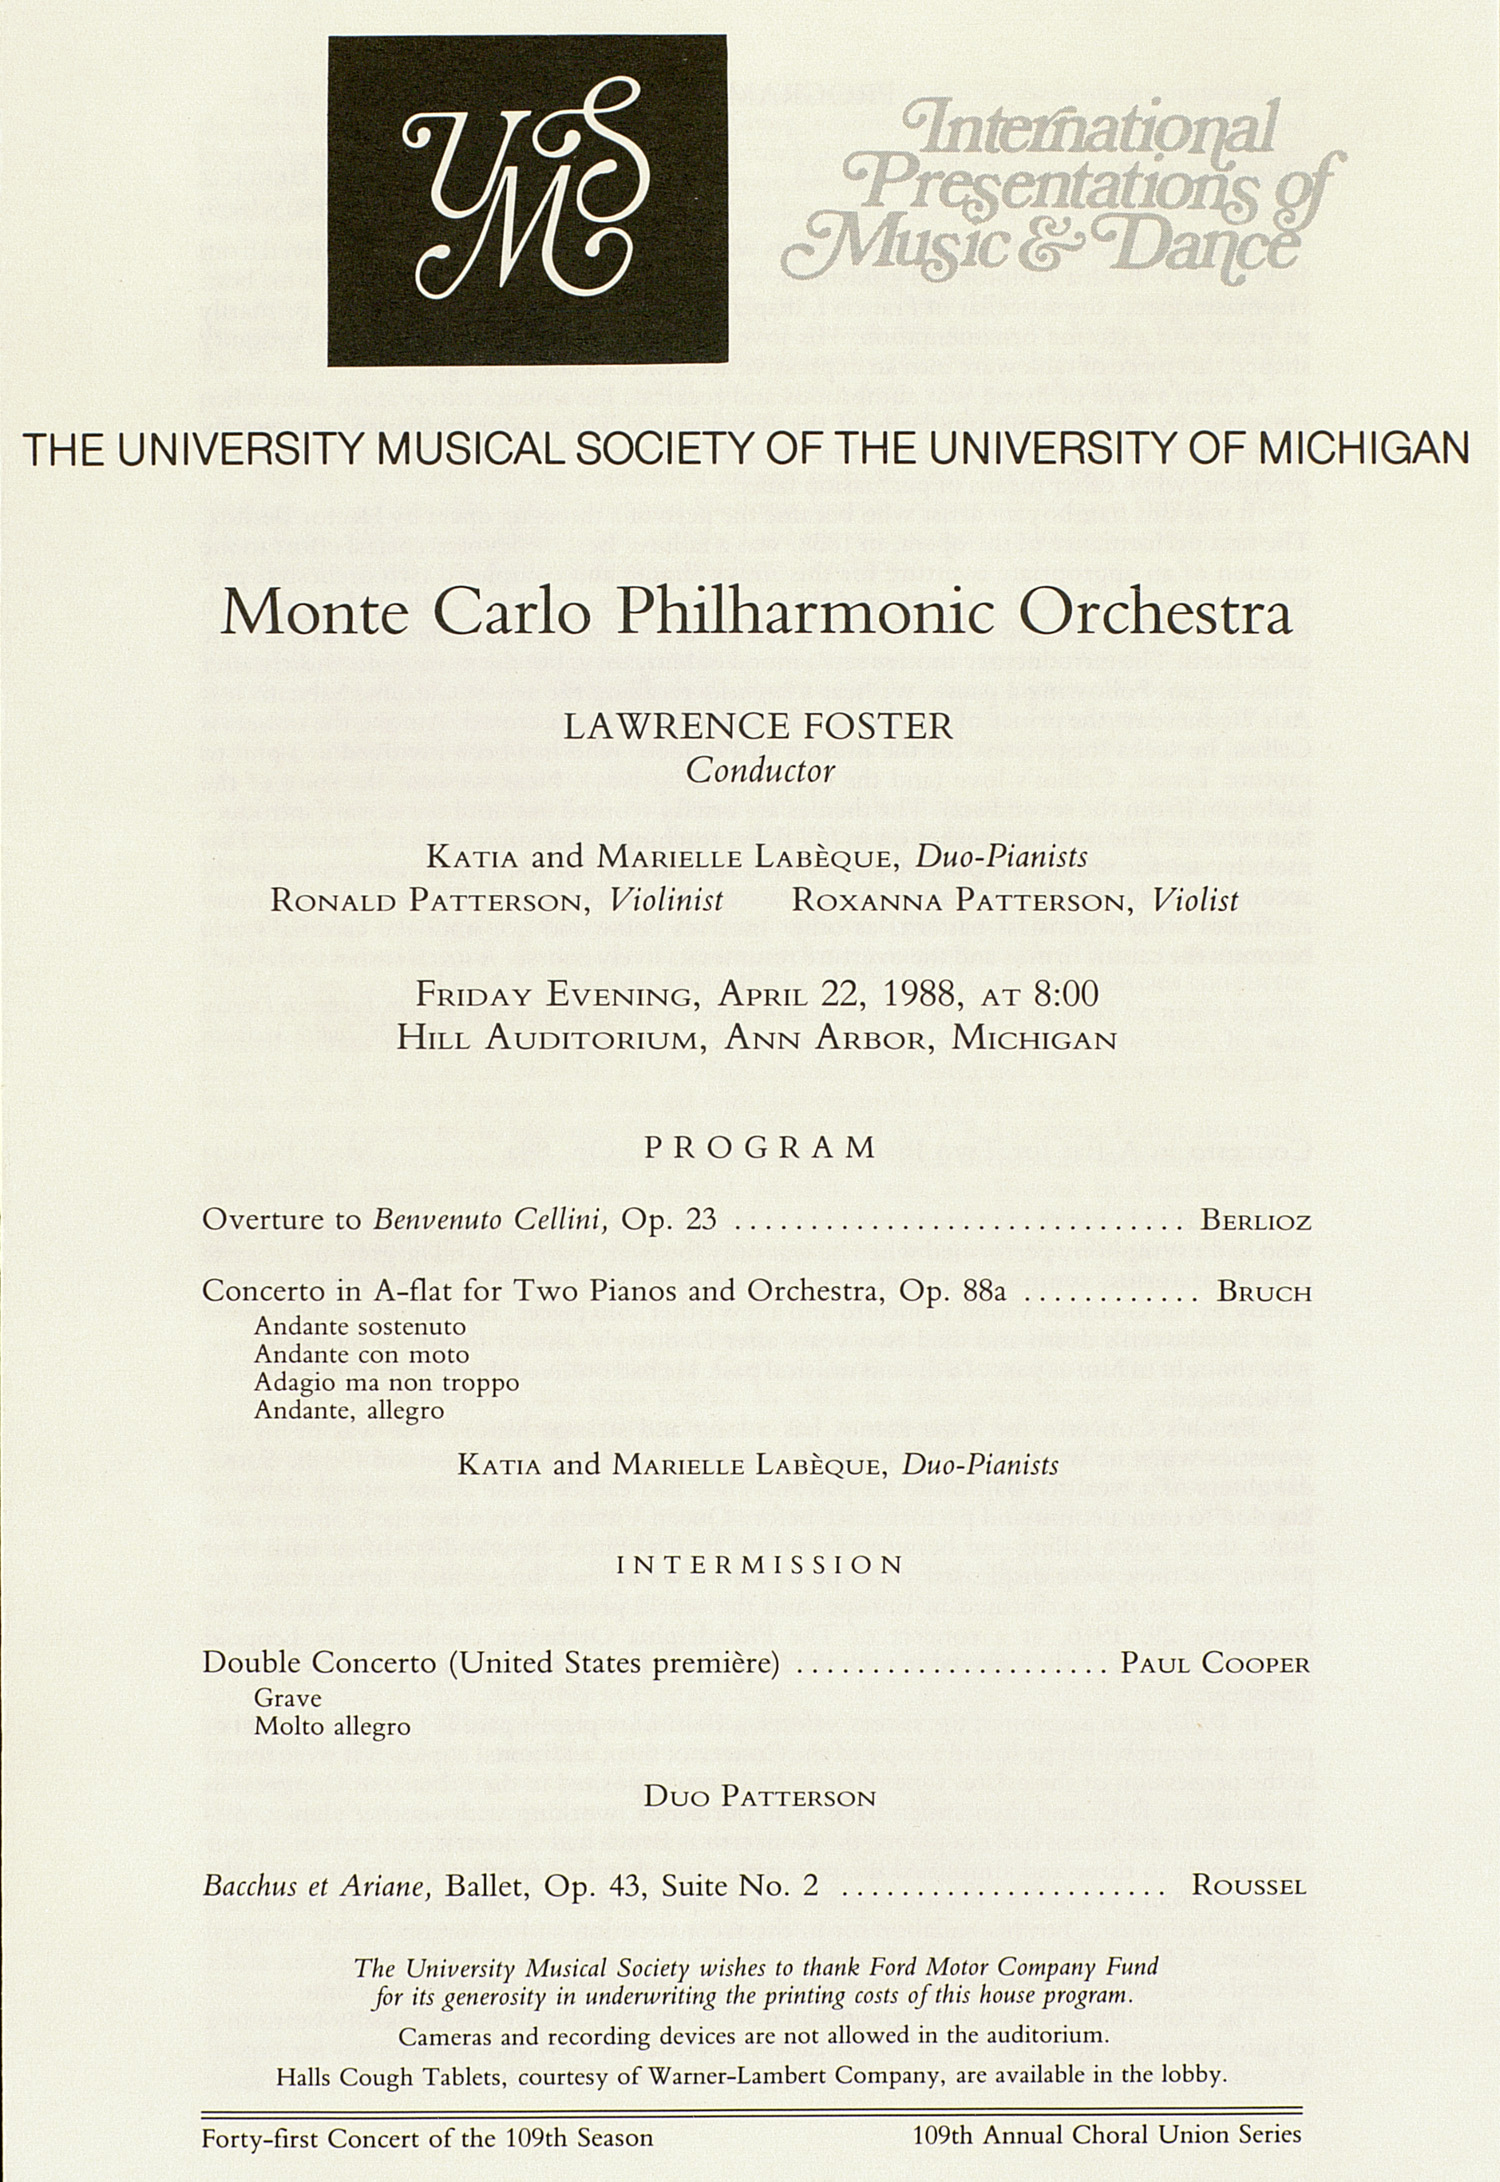 UMS Concert Program, April 22, 1988: International Presentations Of Music & Dance -- Monte Carlo Philharmonic Orchestra image